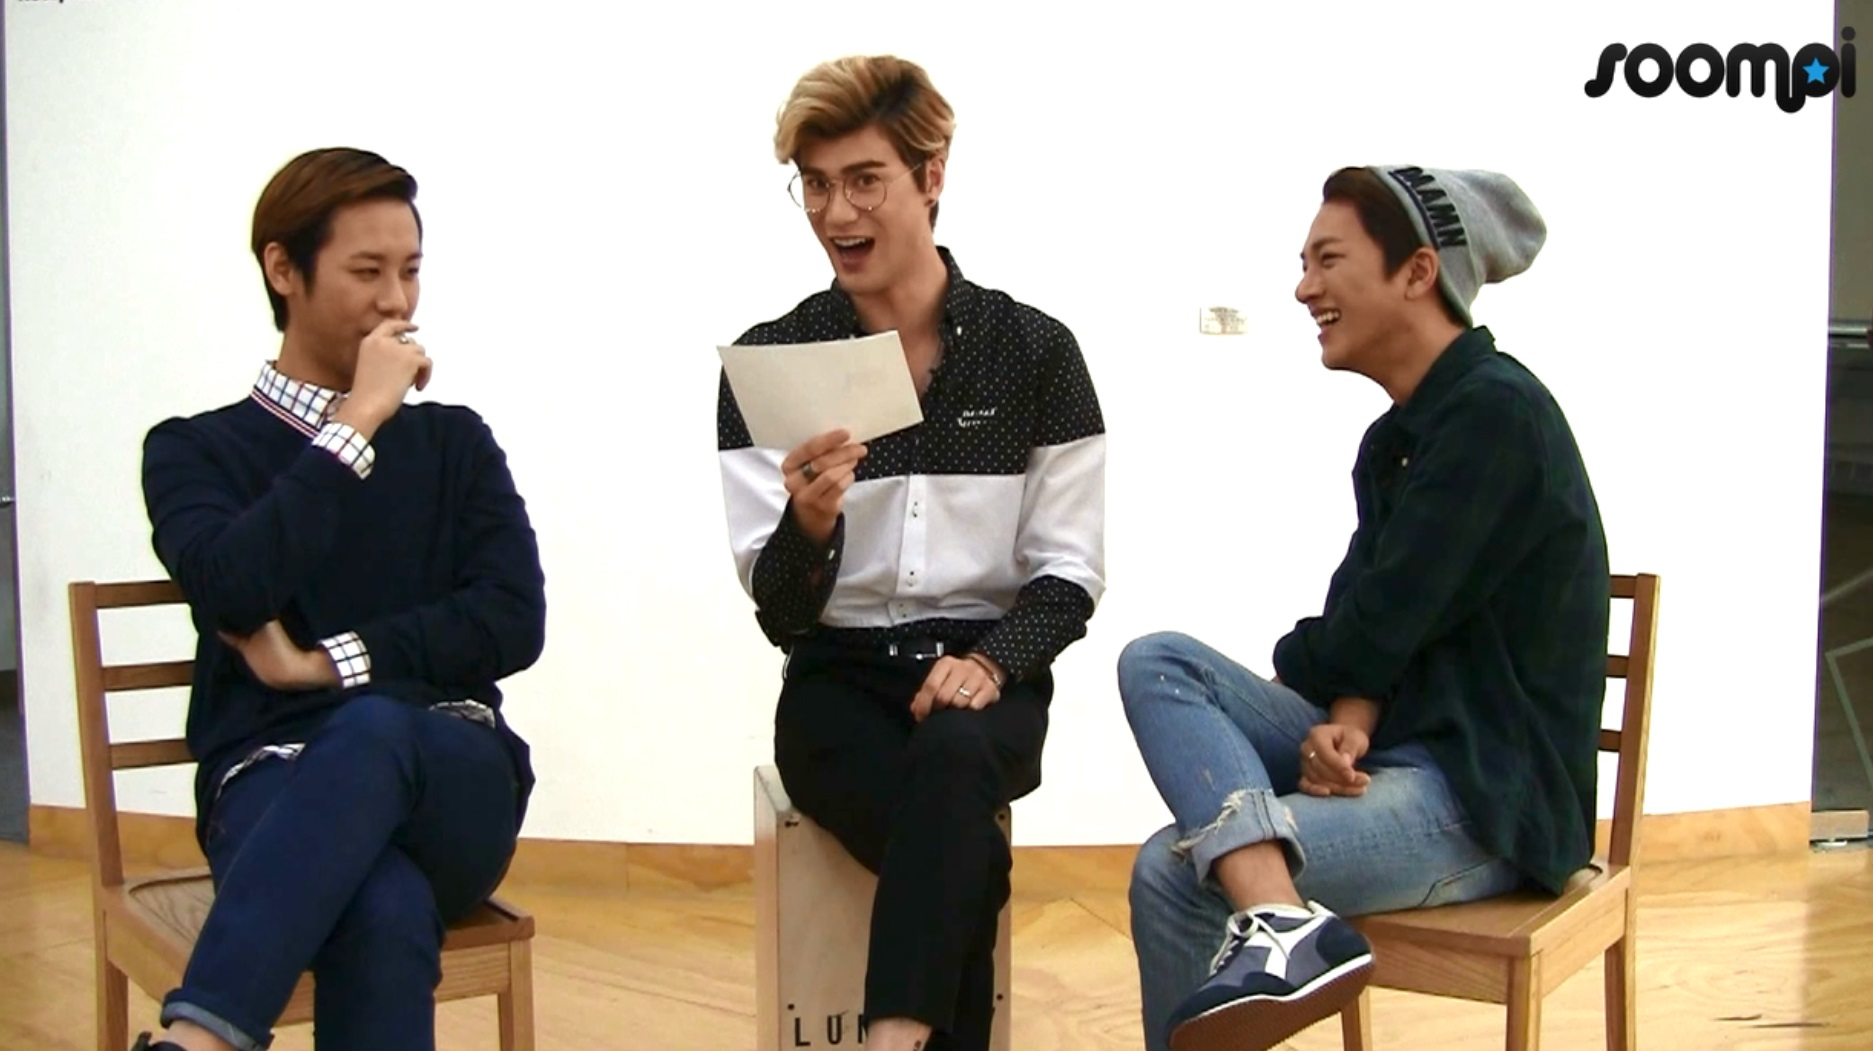 lunafly article